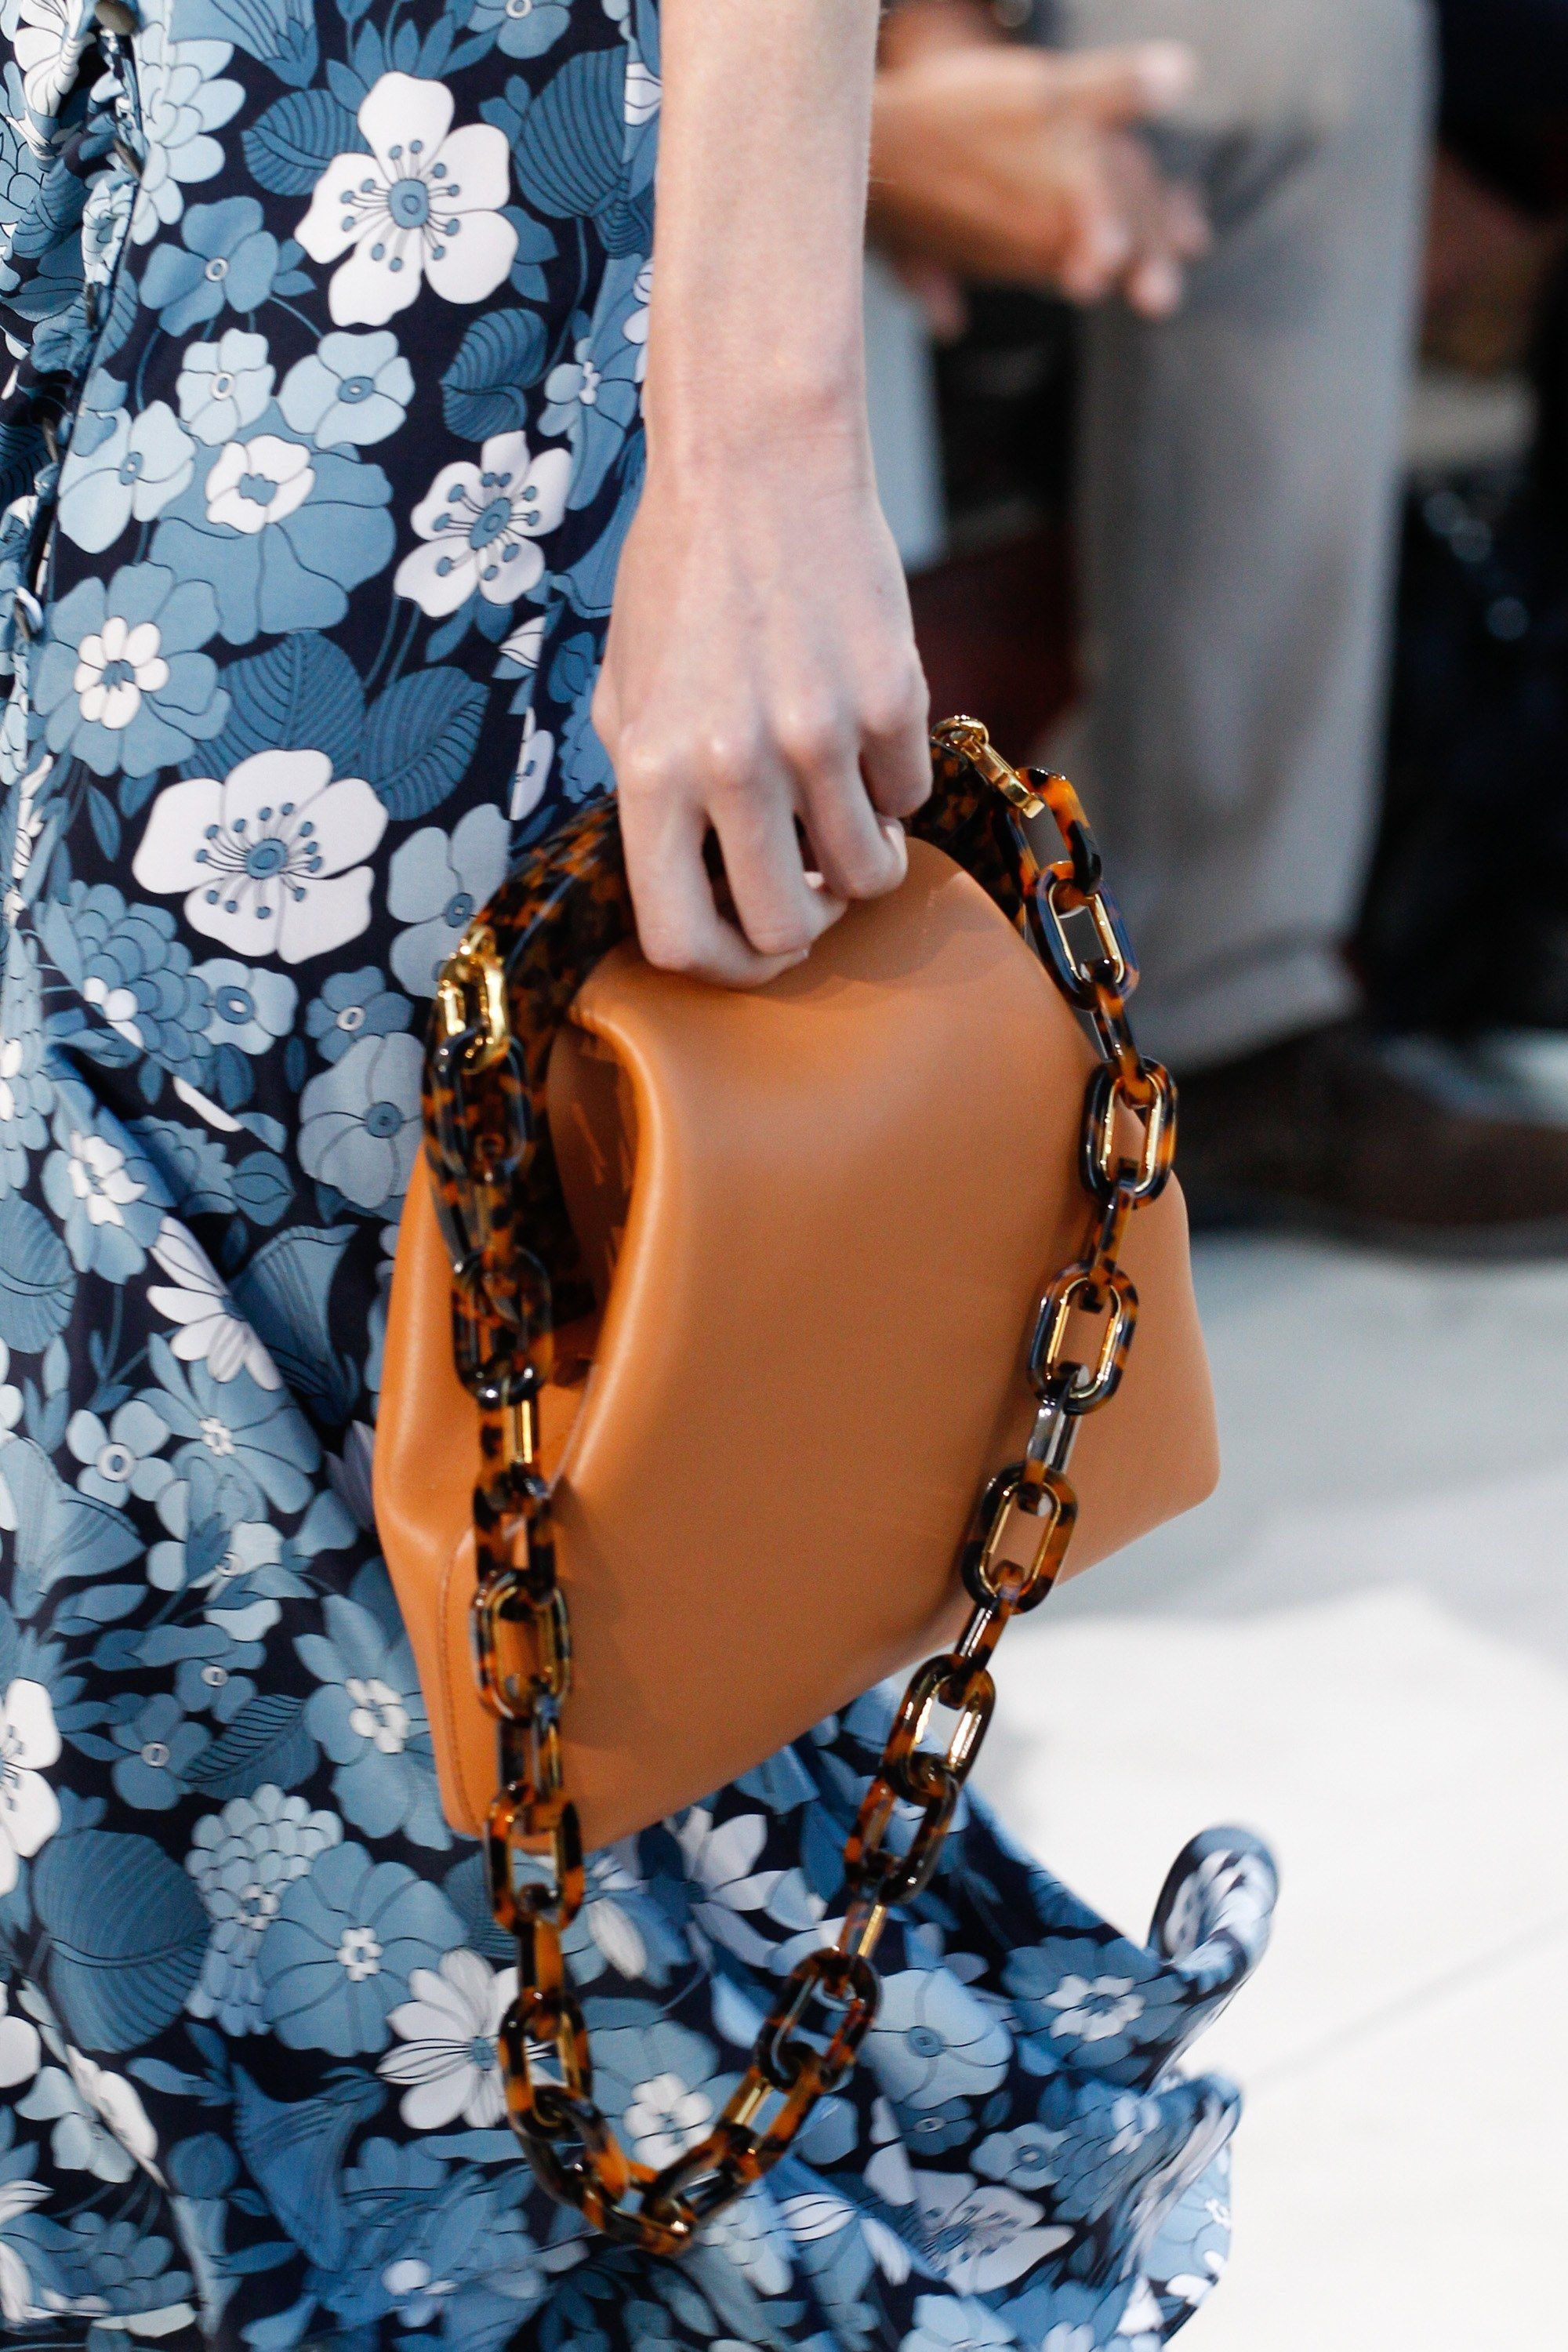 Michael Kors Collection Spring 2017 Ready To Wear Fashion Show Details